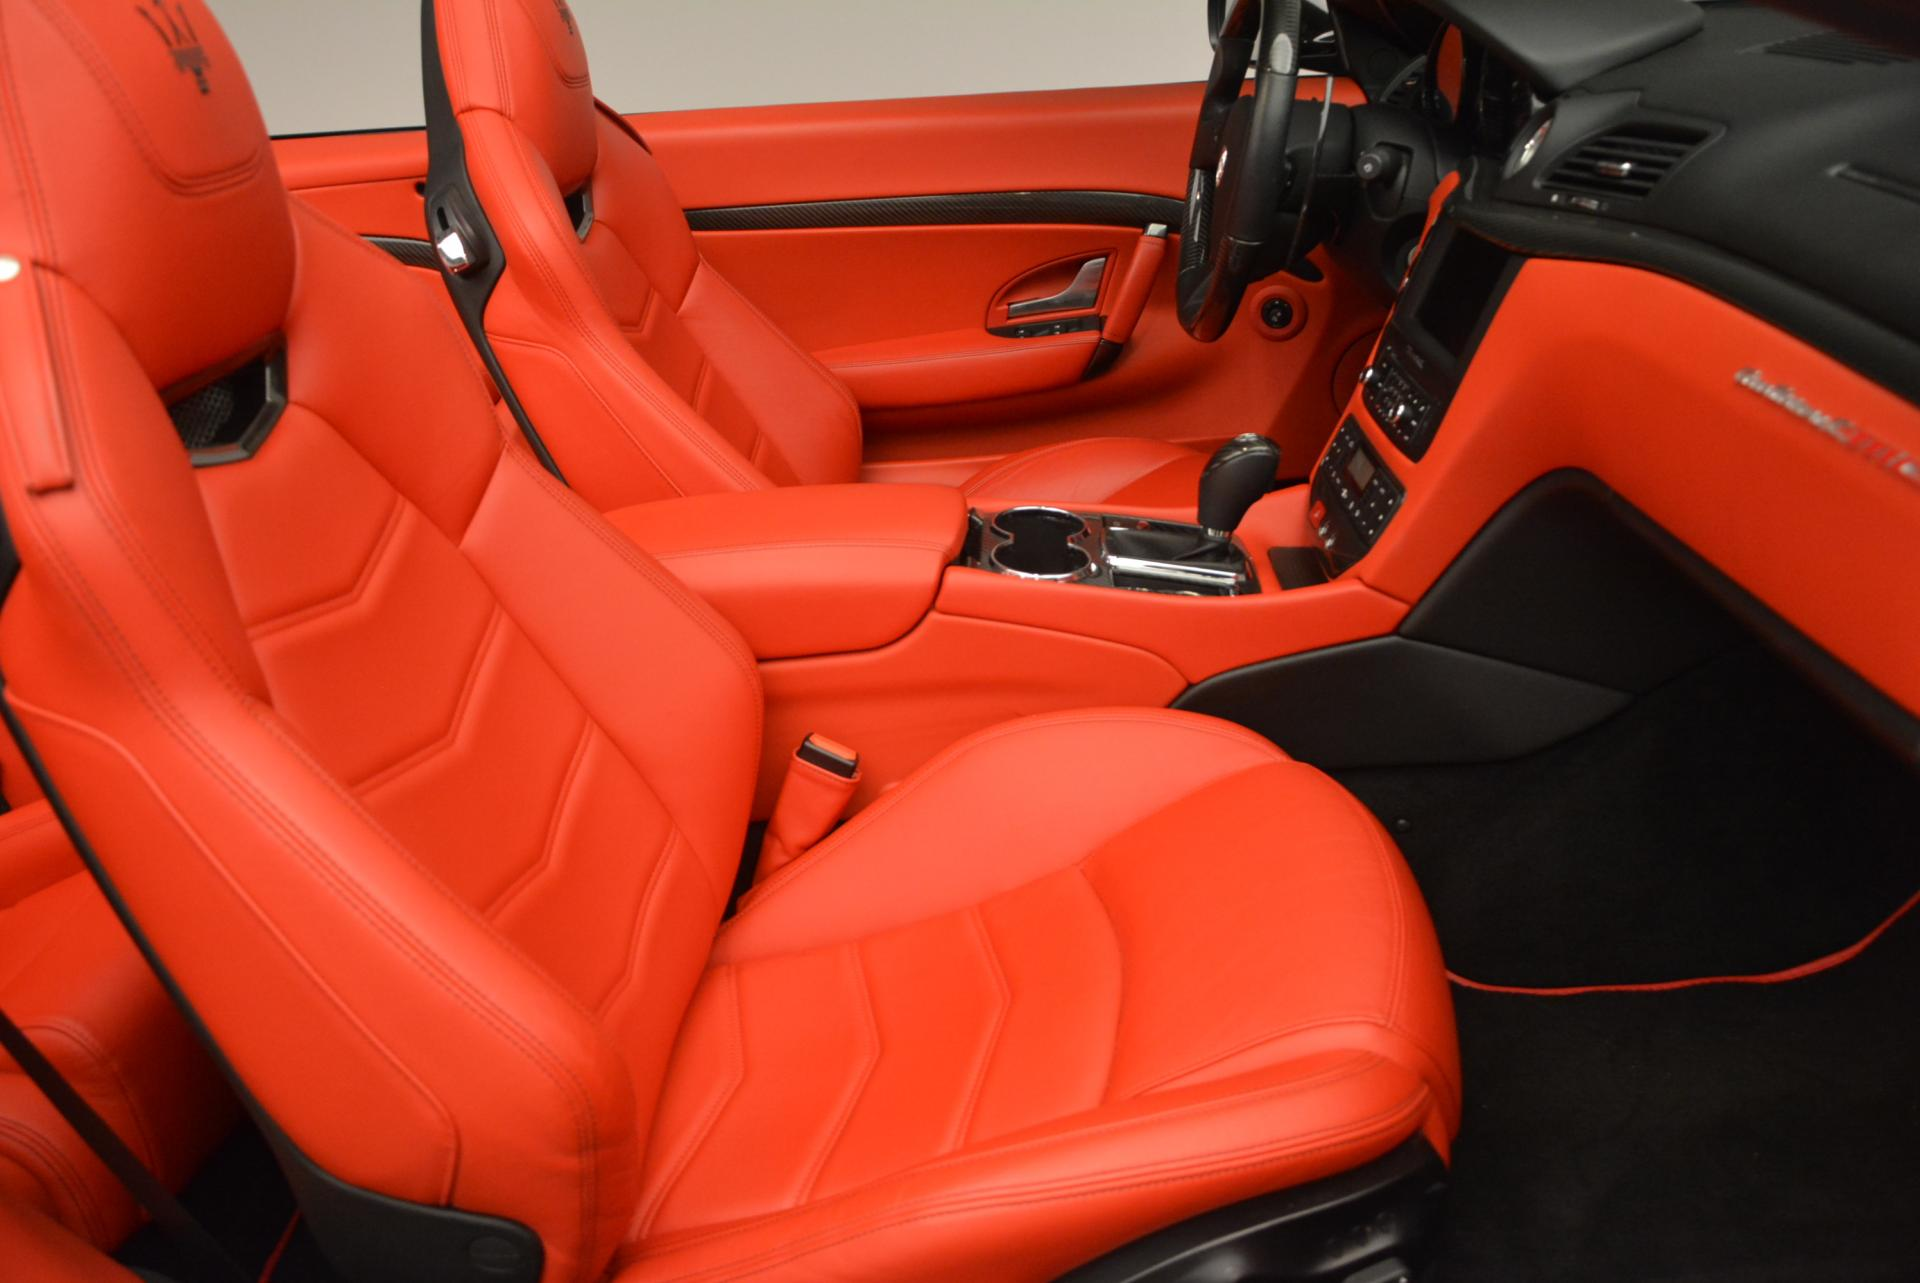 Used 2013 Maserati GranTurismo MC For Sale In Greenwich, CT 521_p28